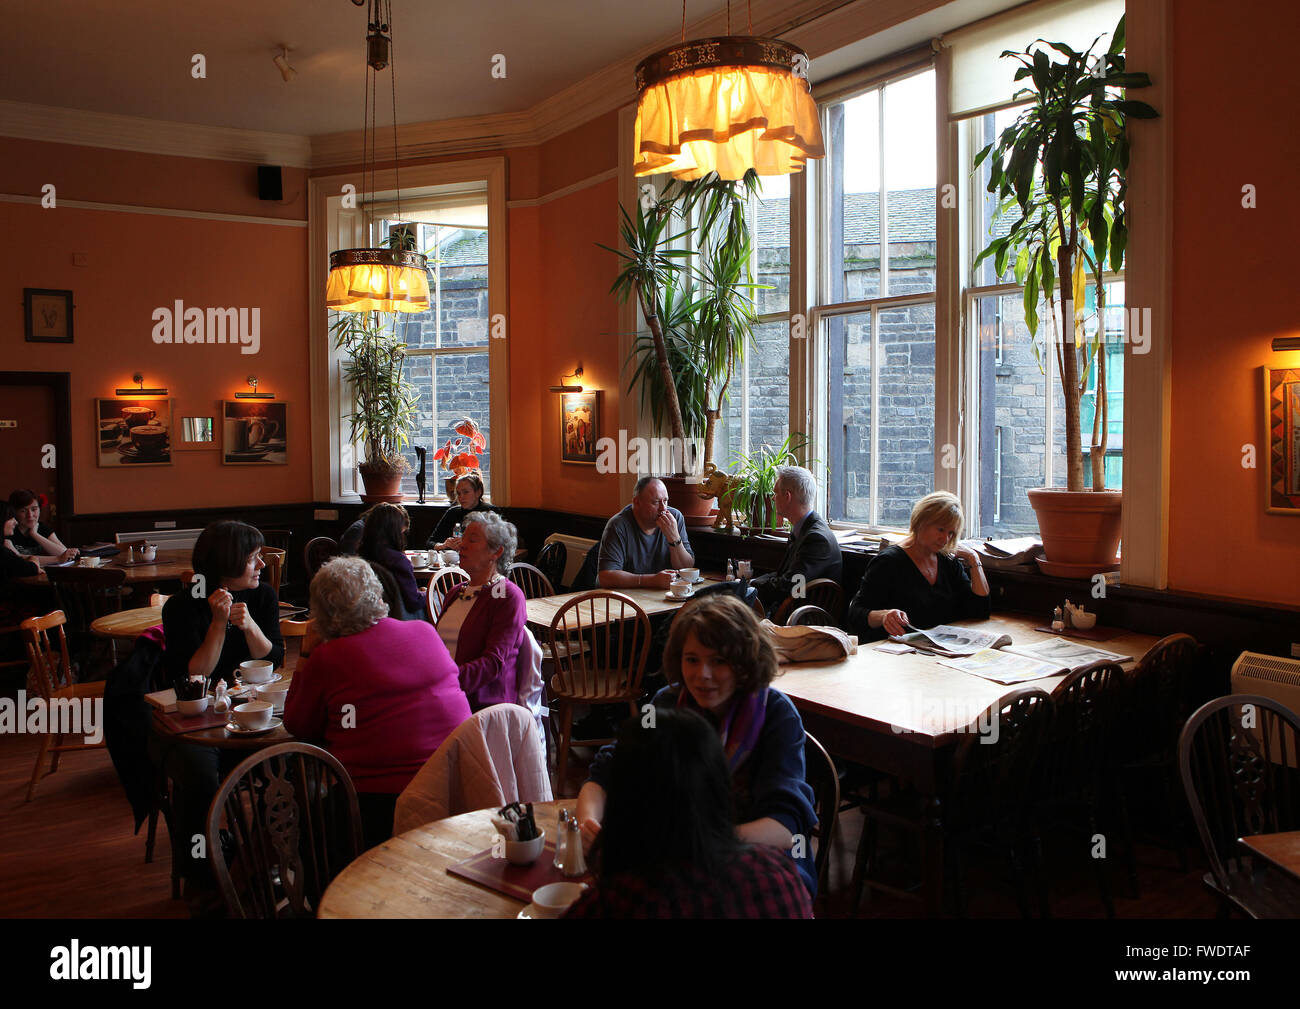 j k rowling stock photos j k rowling stock images alamy edinburgh scotland the elephant house cafe made famous by j k rowling as she write